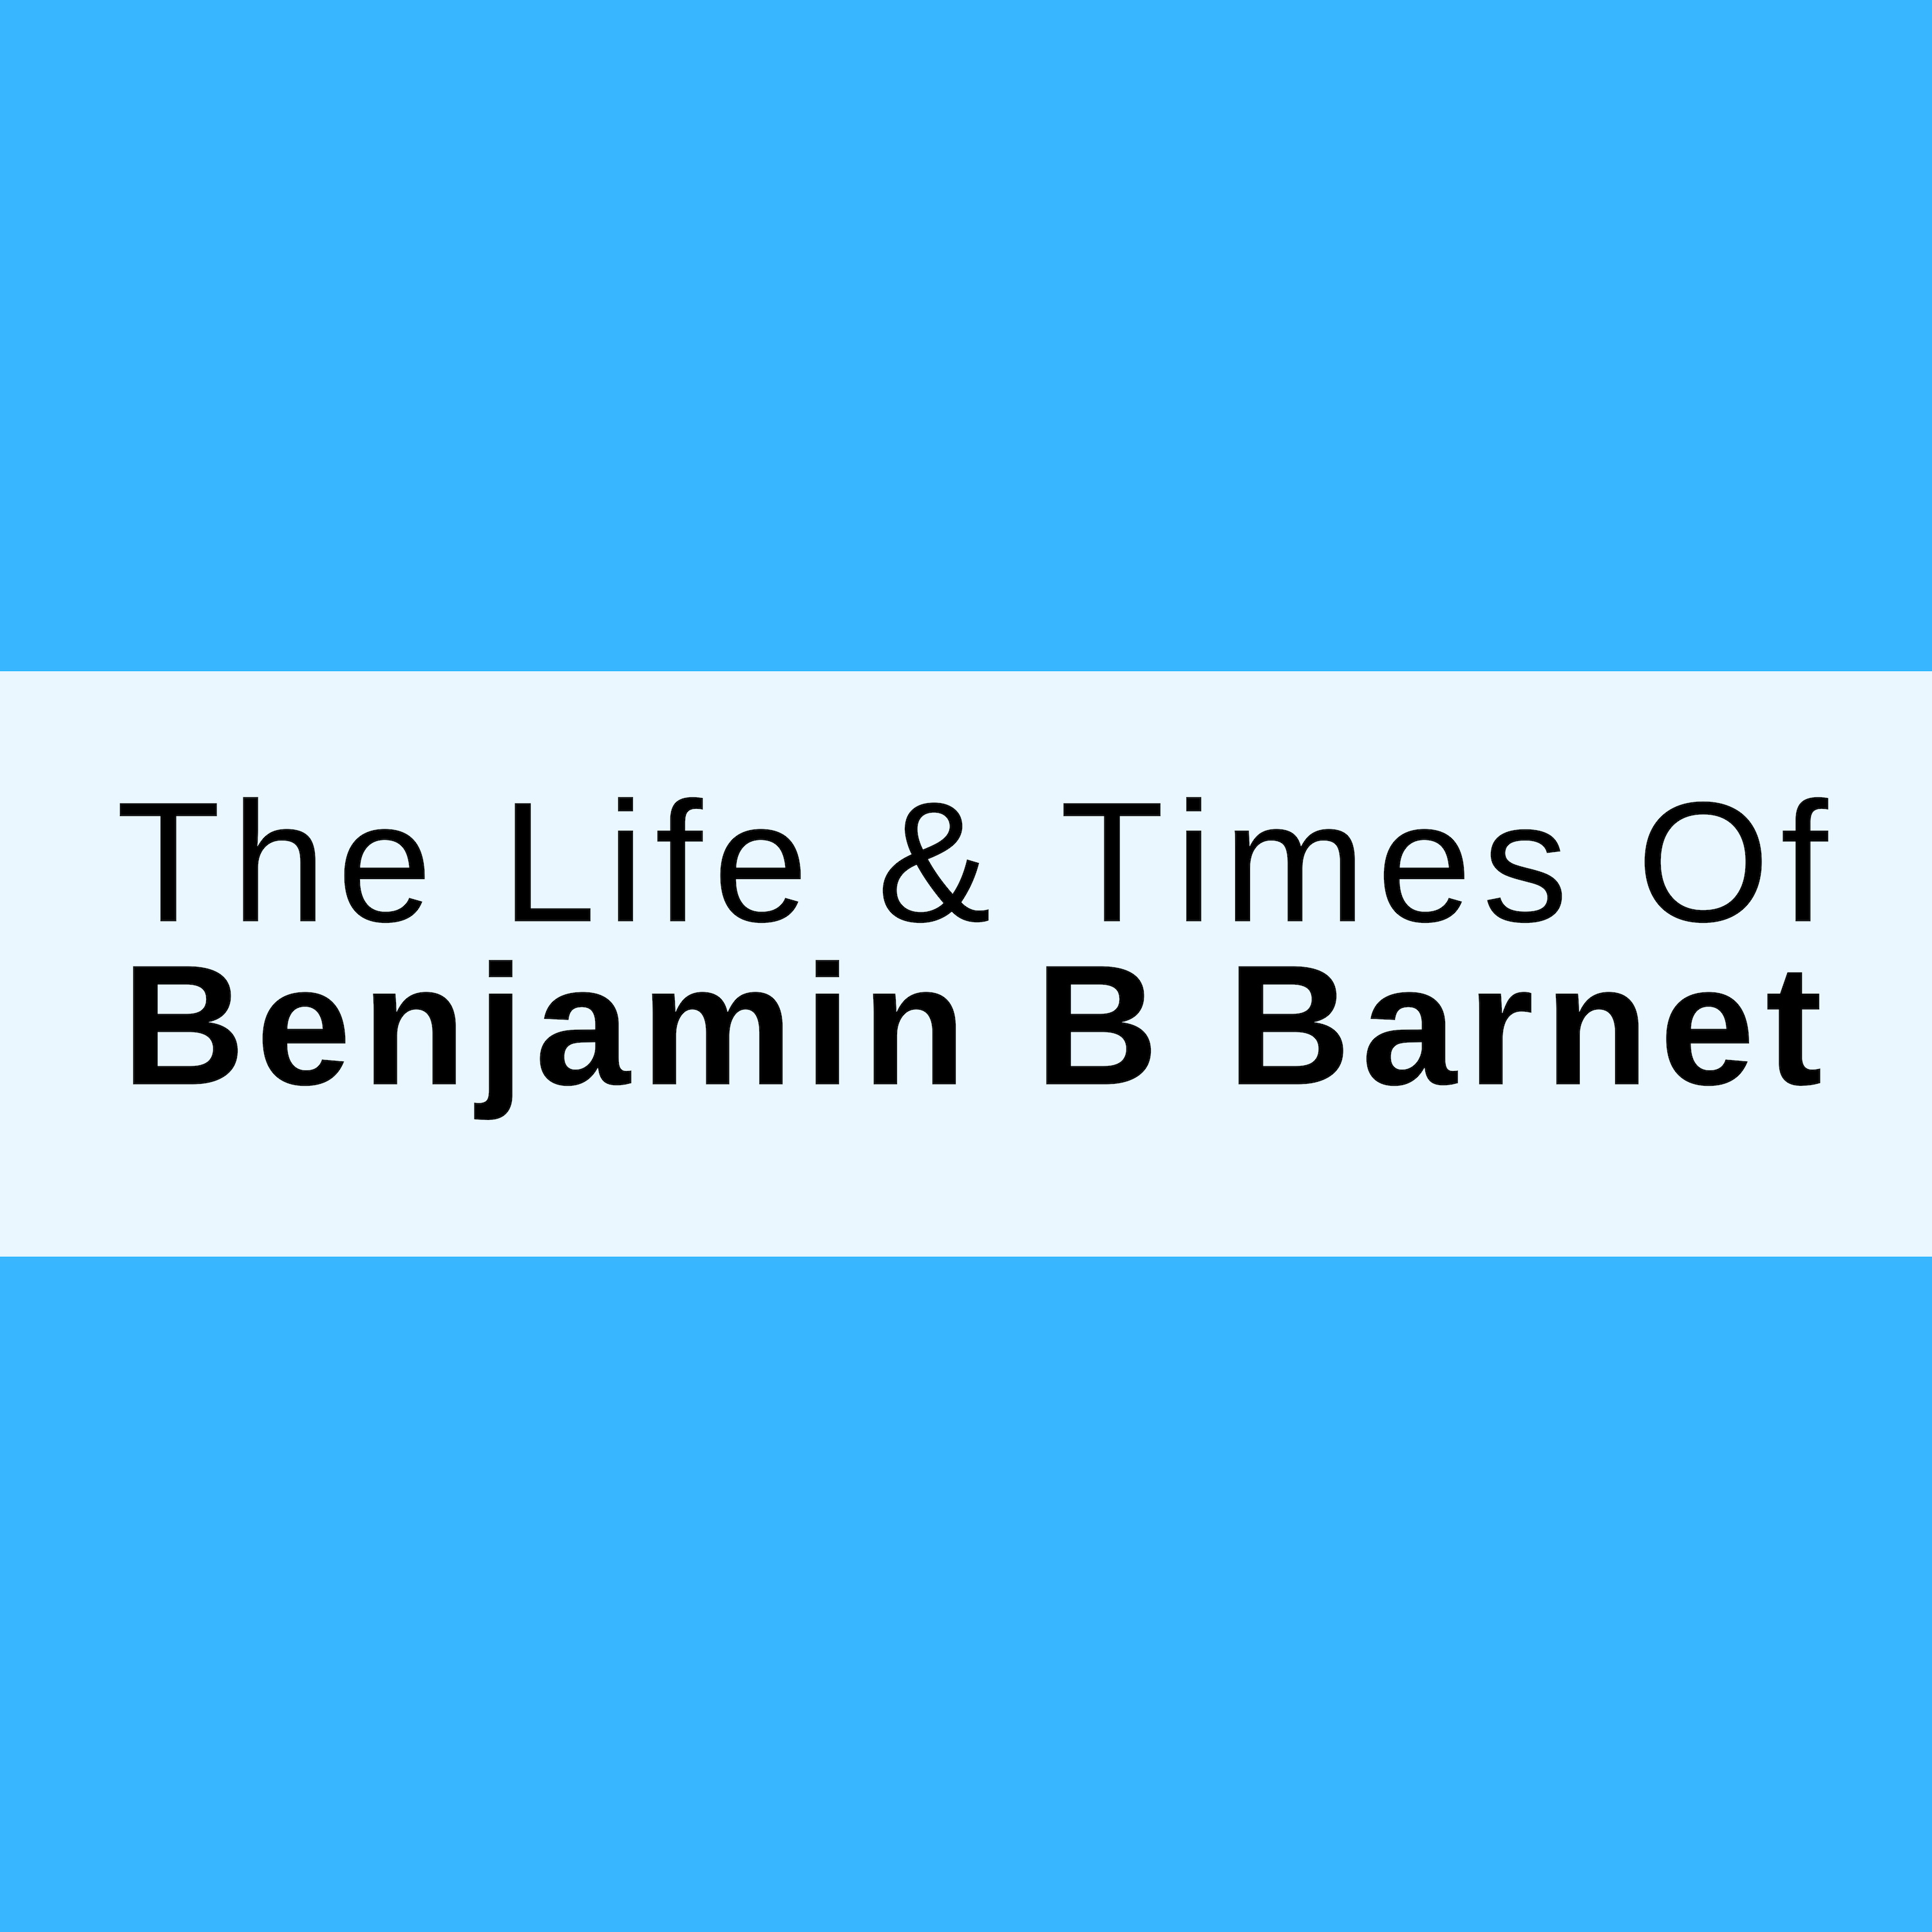 SHOWCASE: The Life and Times Of Benjamin B Barnet